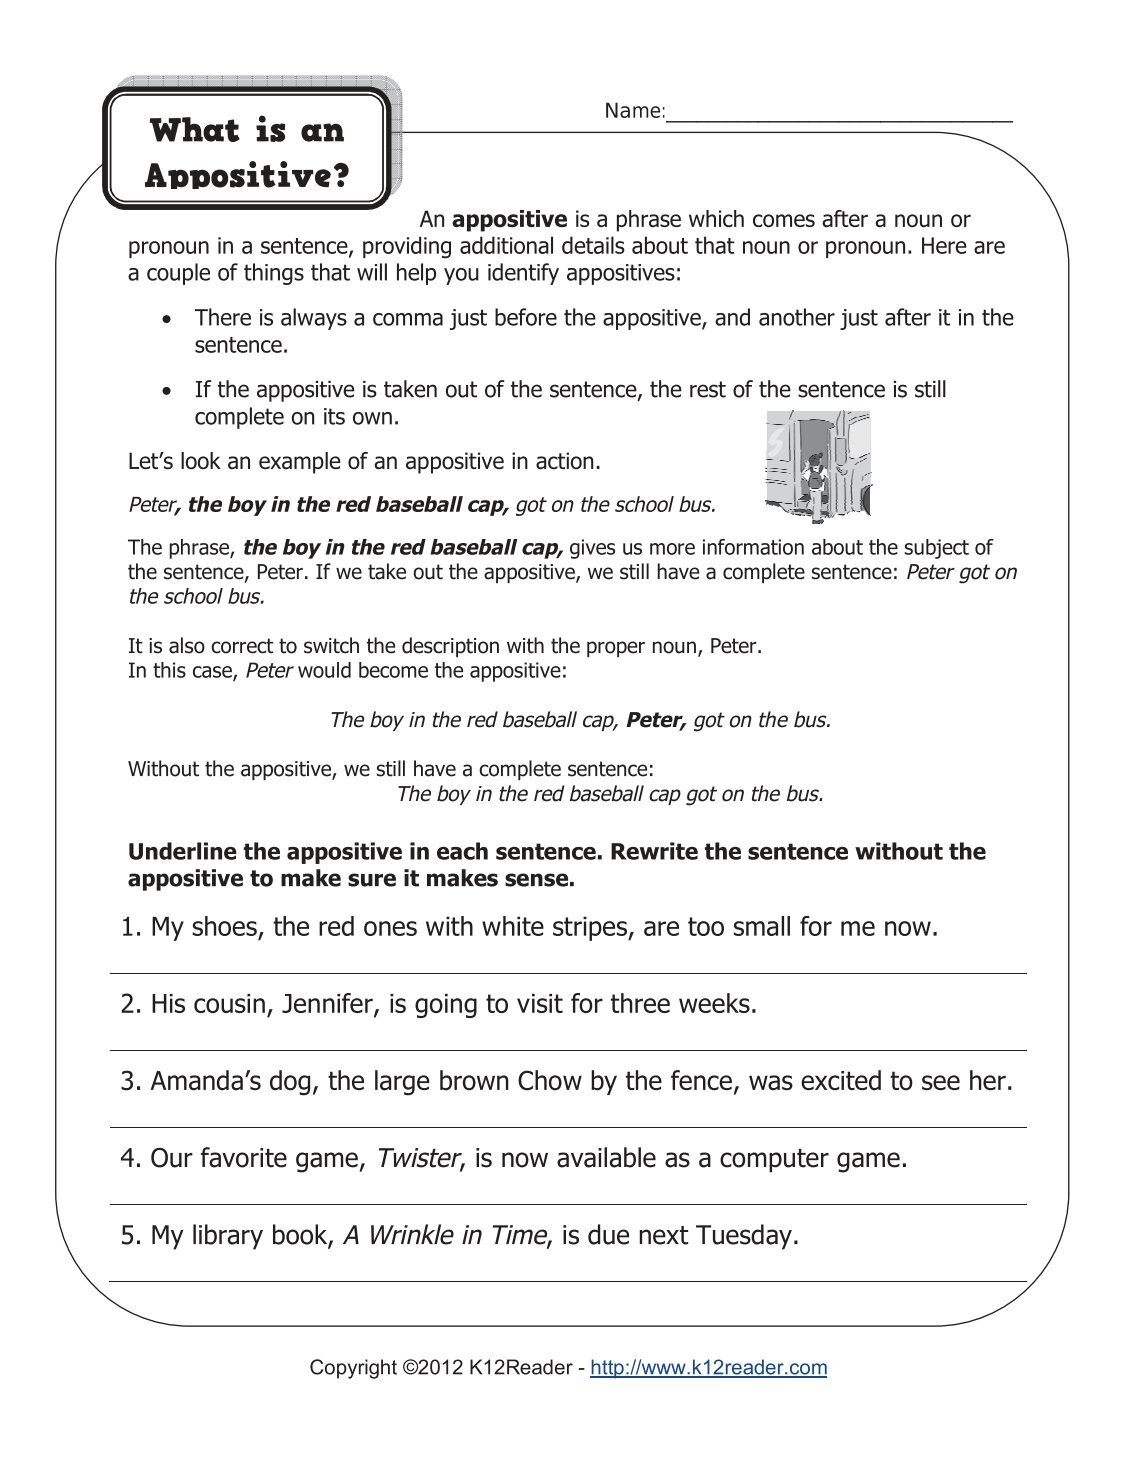 worksheet Participle Phrase Worksheet workbooks participle phrase worksheets free printable appositive worksheet the best and most comprehensive